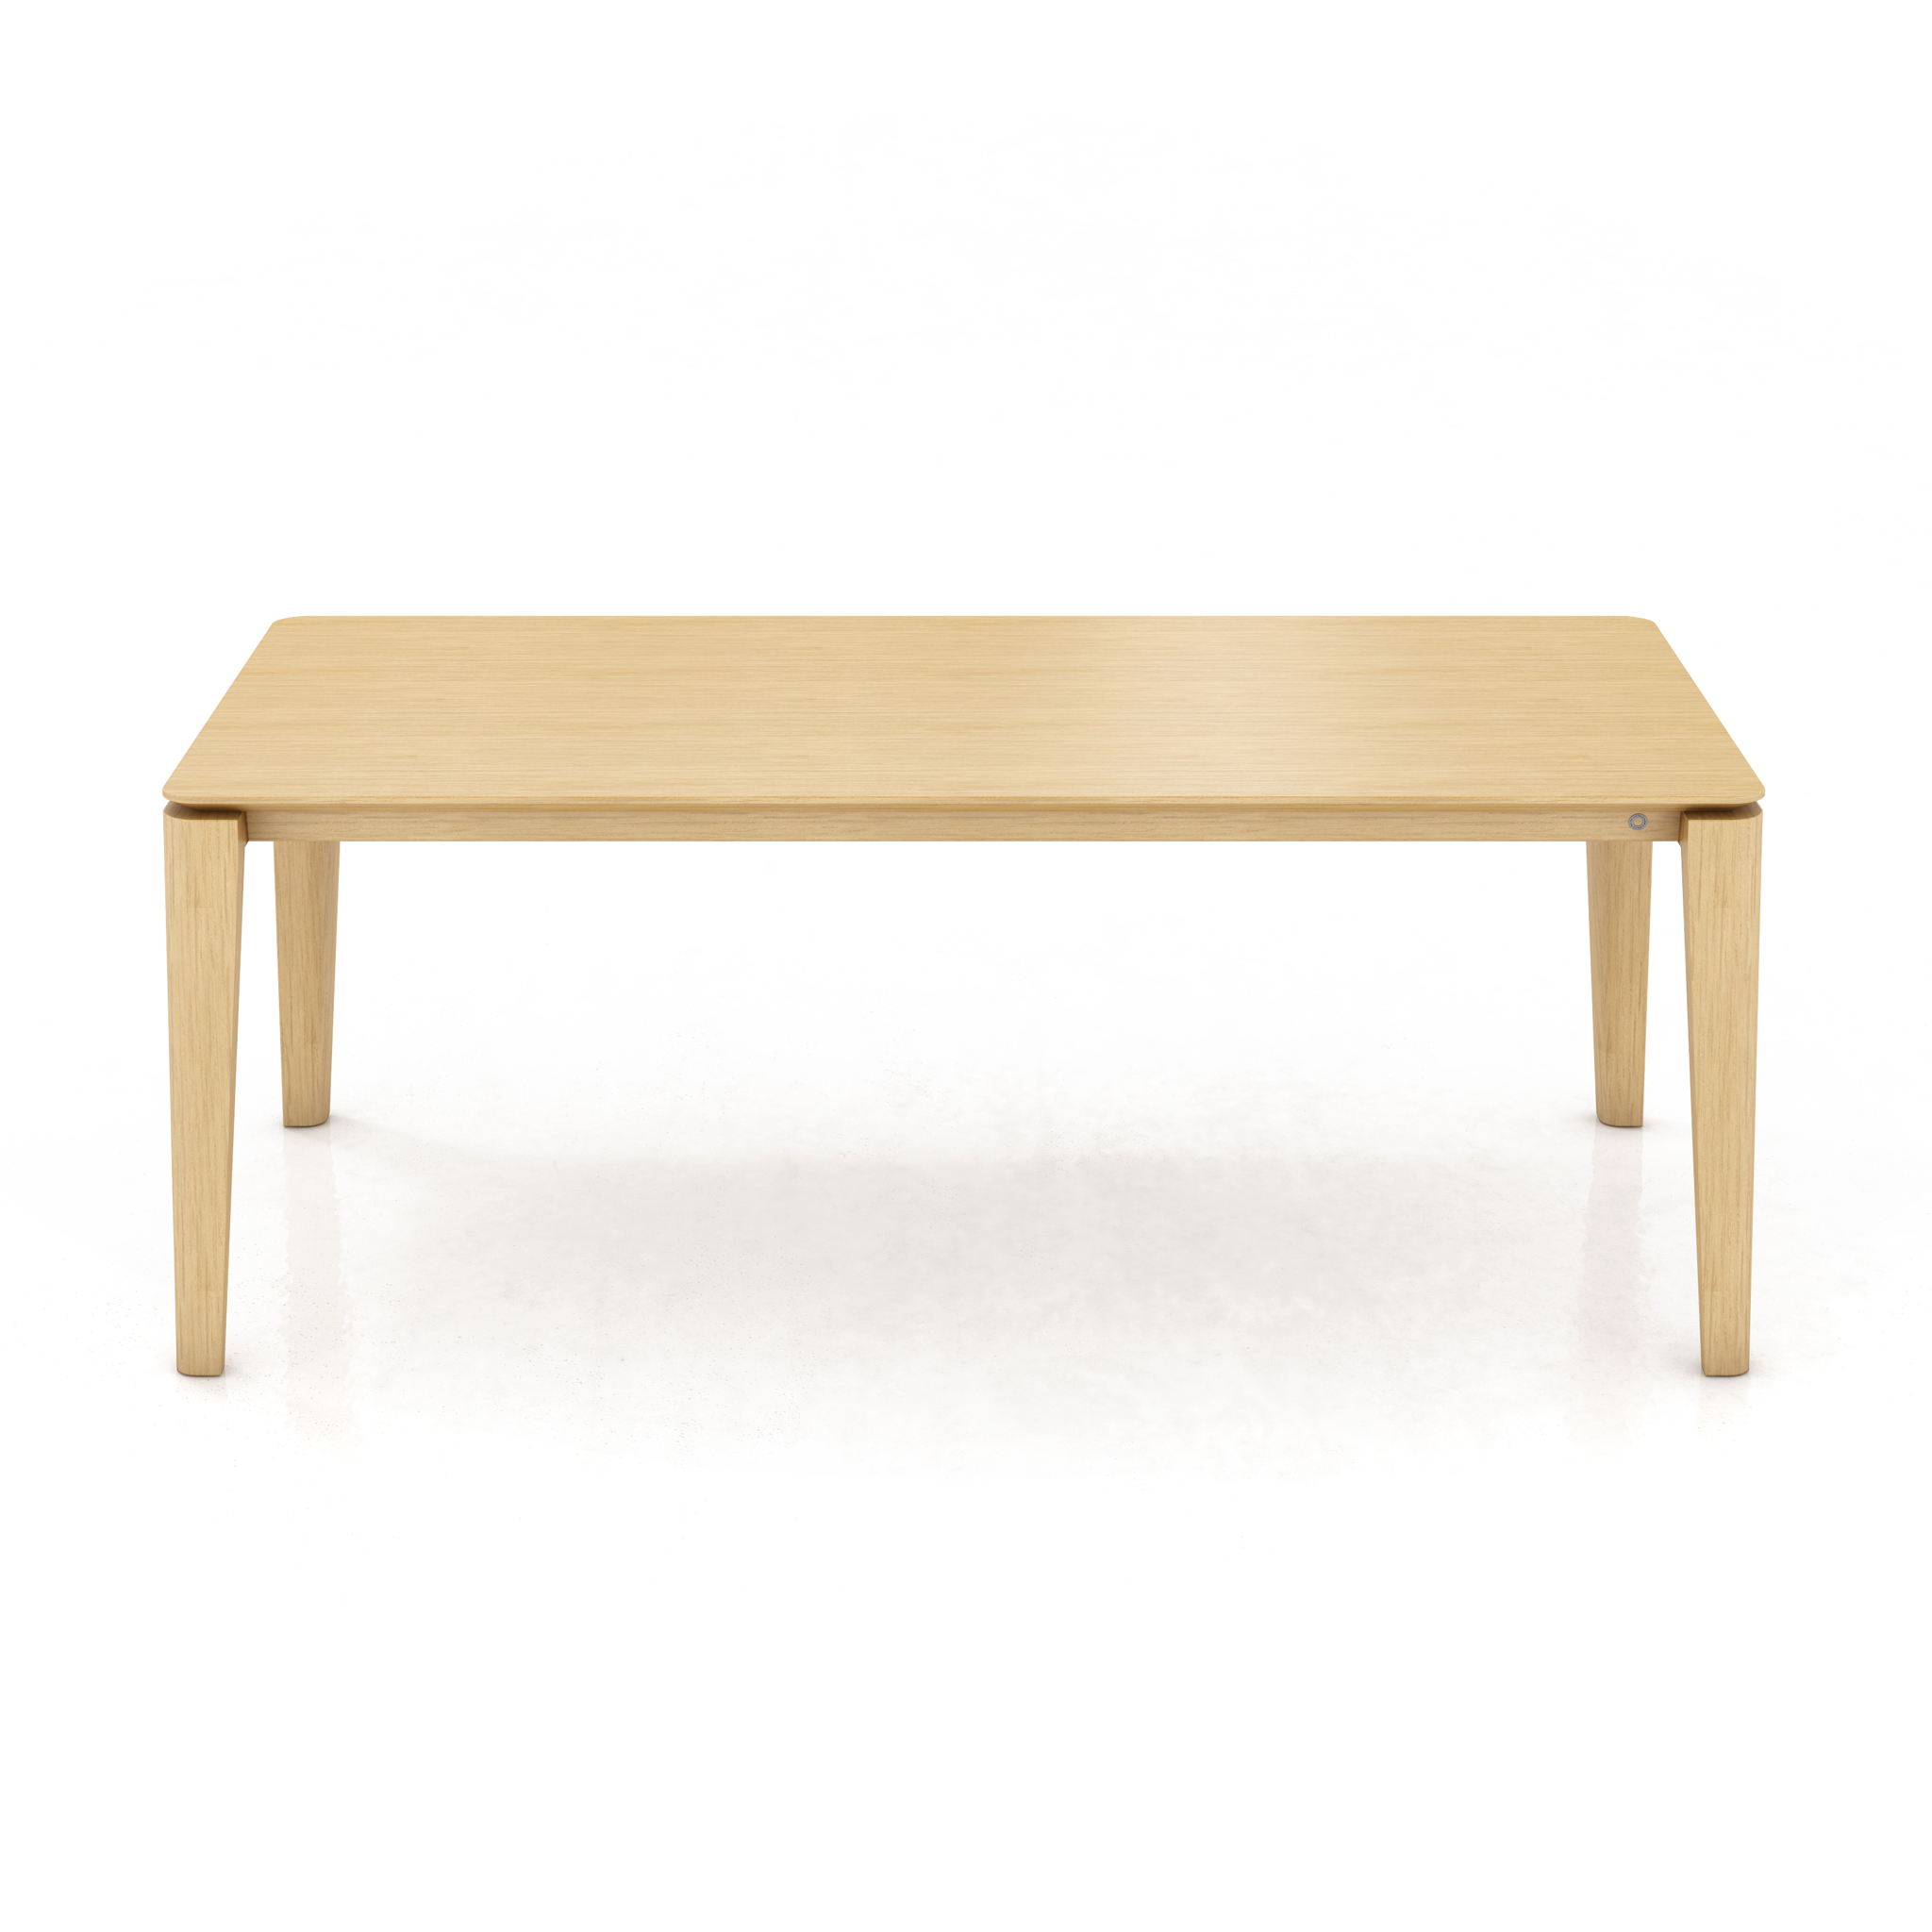 STANFORD FIXED DINING TABLE 200cm-0